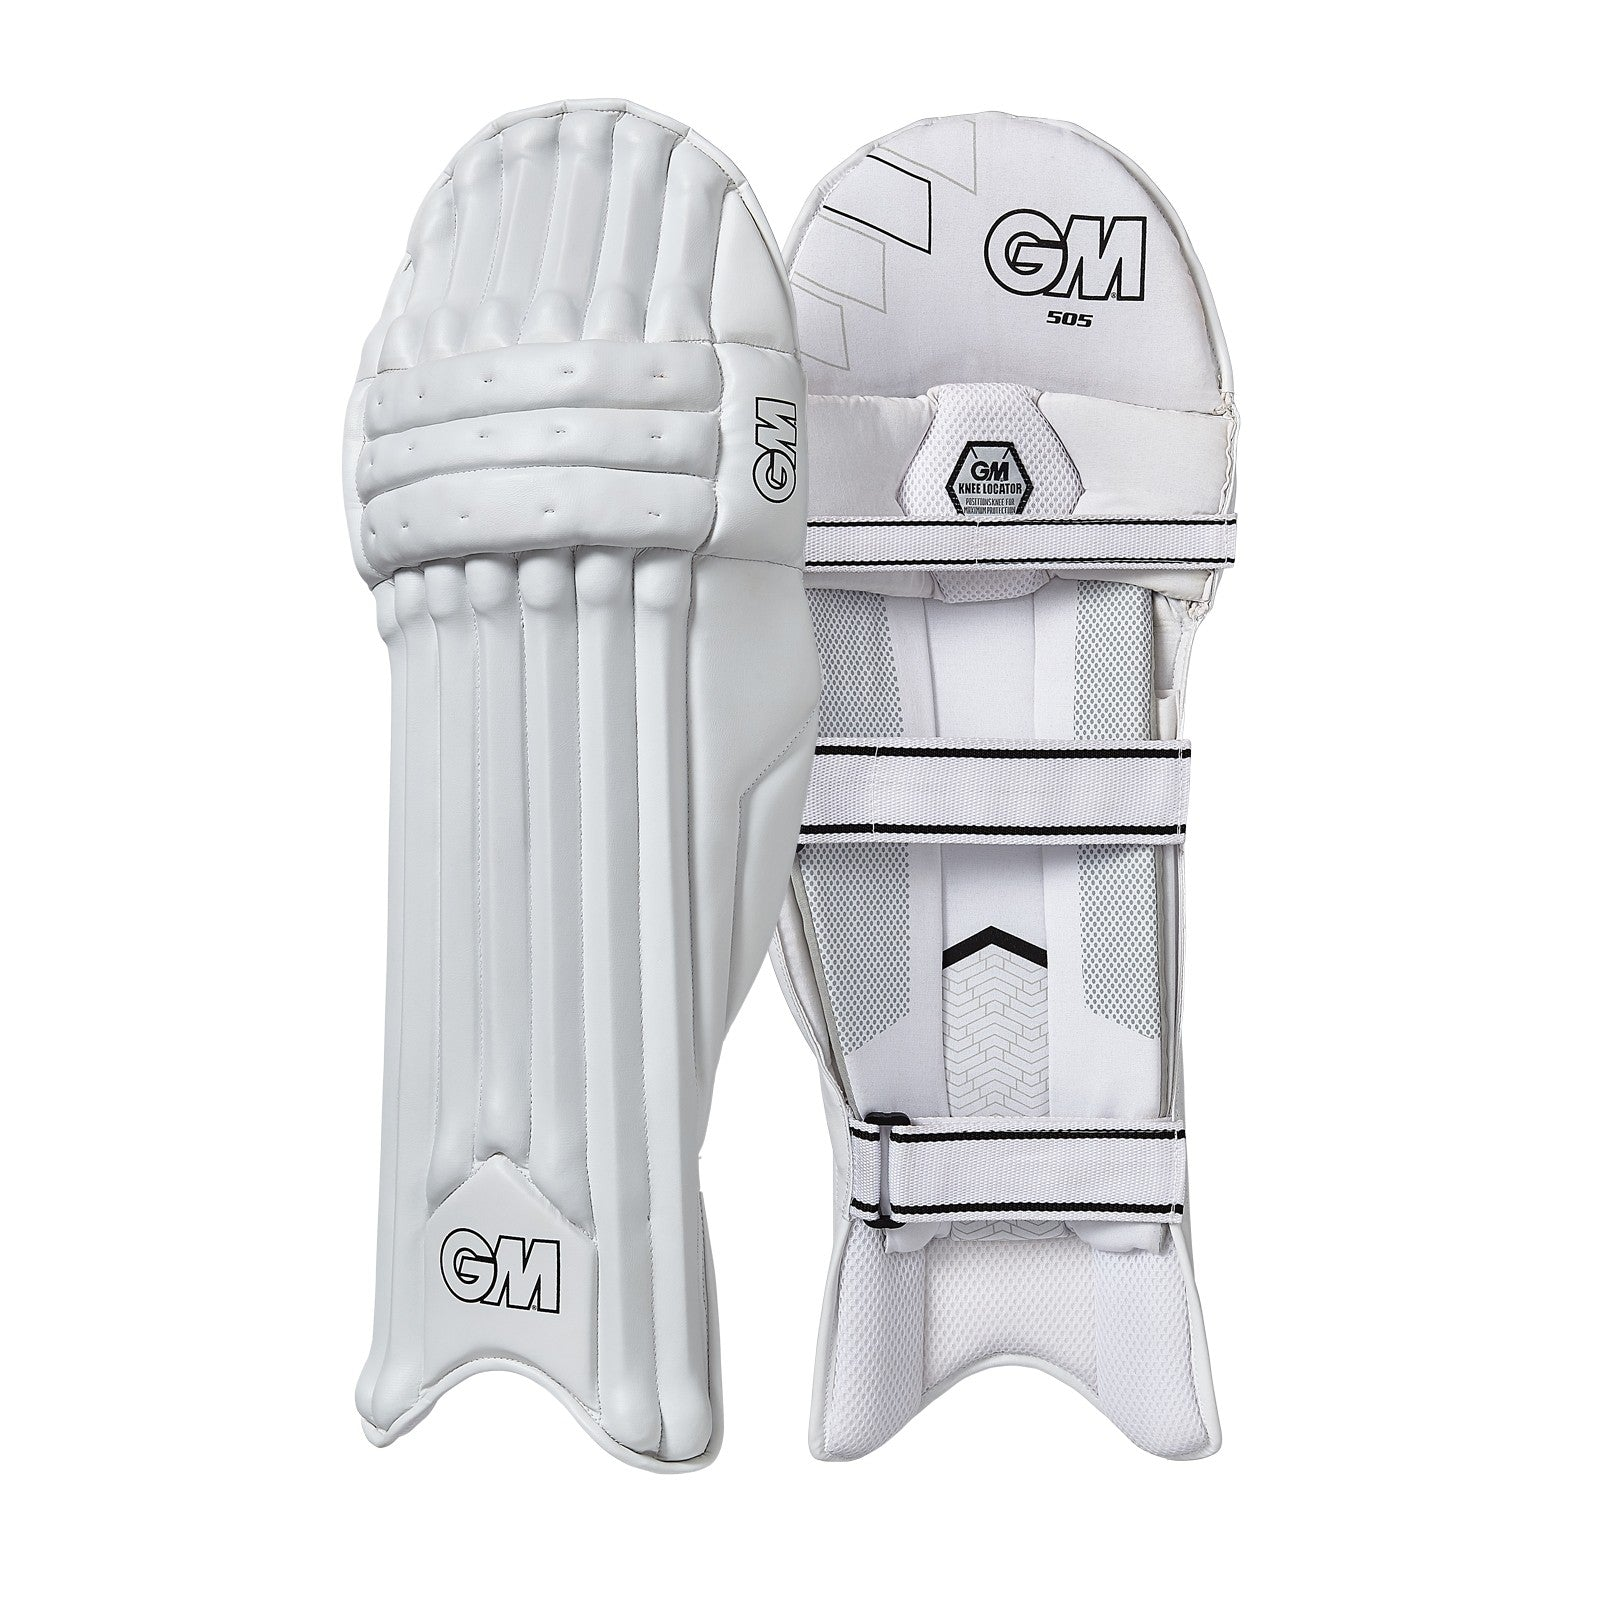 505 Batting Pads